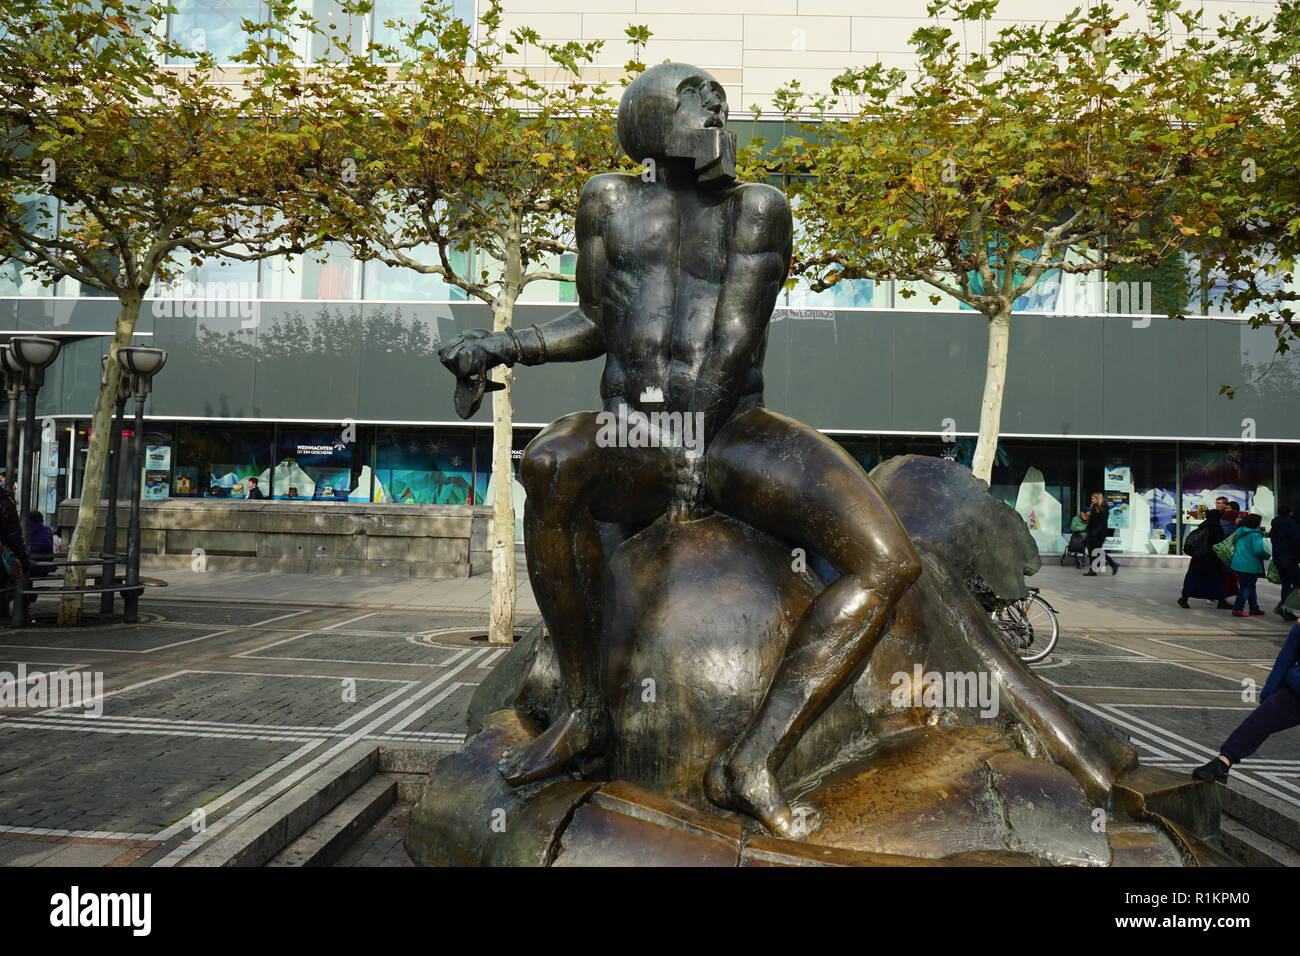 Skulptur David und Goliath von Richard Heß (David and Goliath sculpture by Richard Heß),  Fußgängerzone der Zeil, Innenstadt, Frankfurt am Main - Stock Image